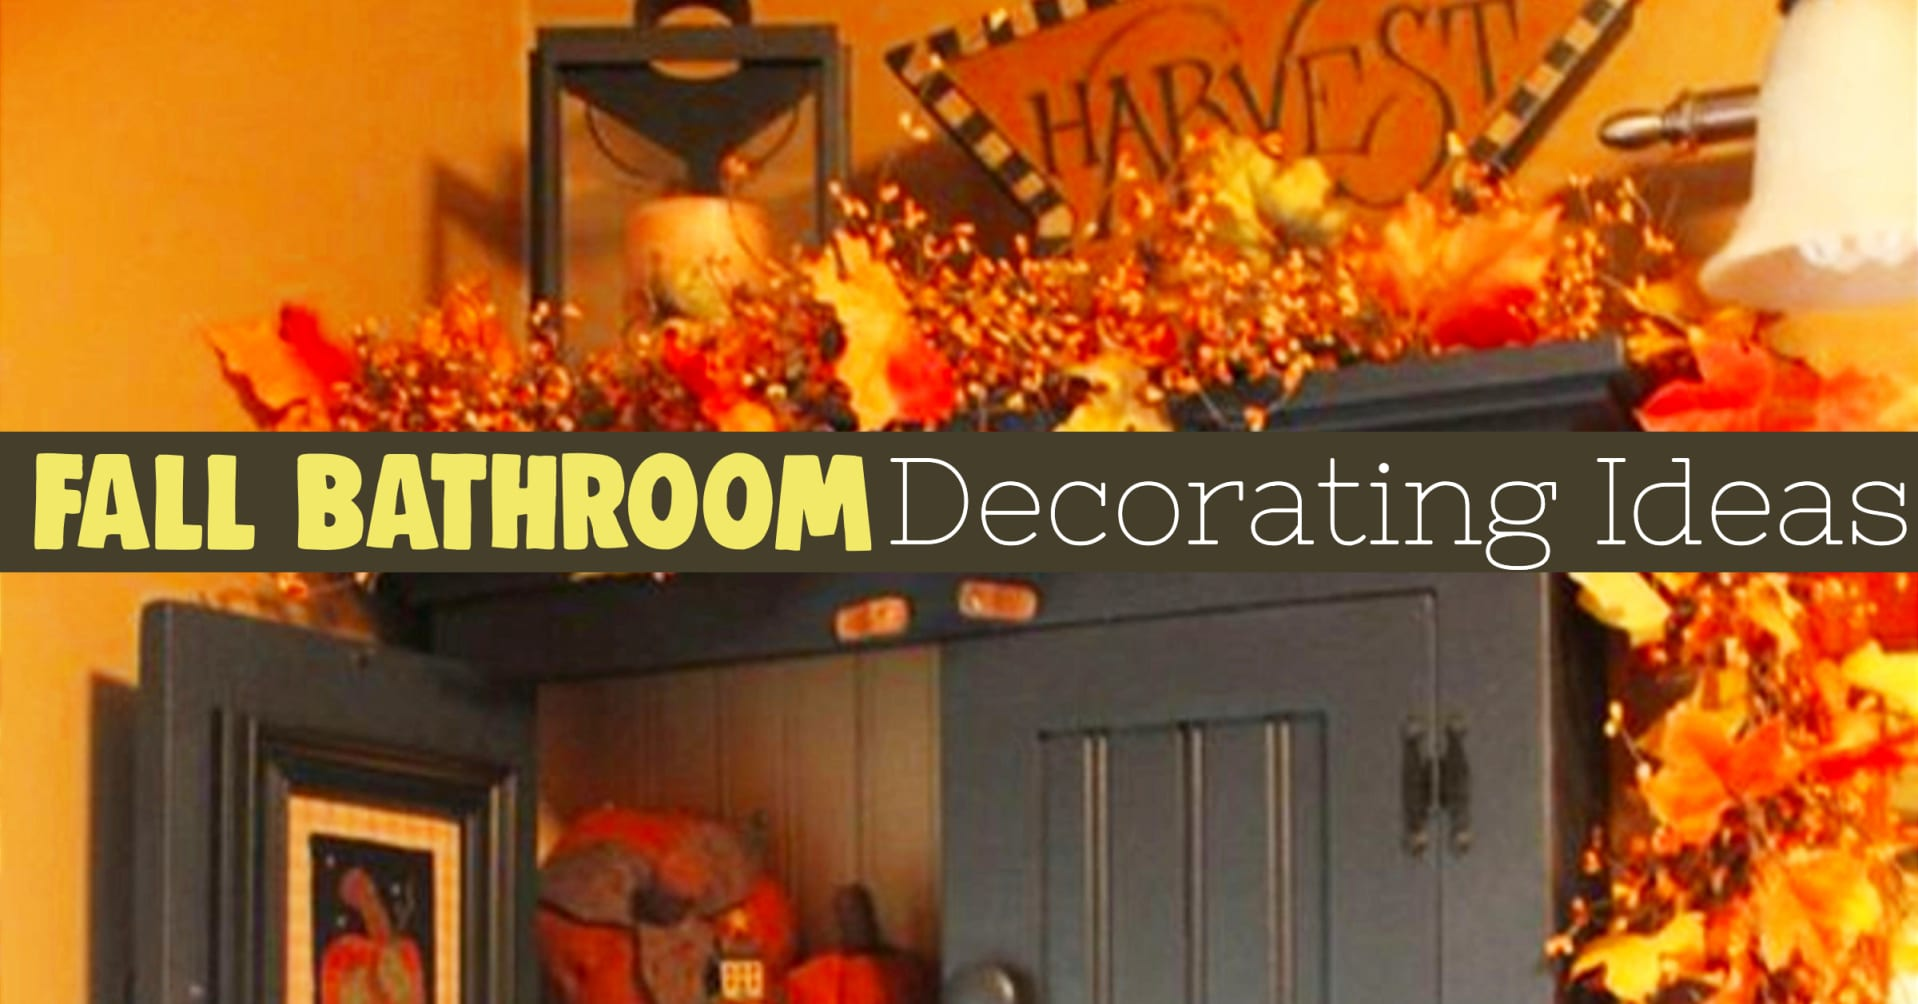 Fall Bathroom Decor - Decorate for Fall and Autumn in your bathroom with these unique fall bathroom decorating ideas